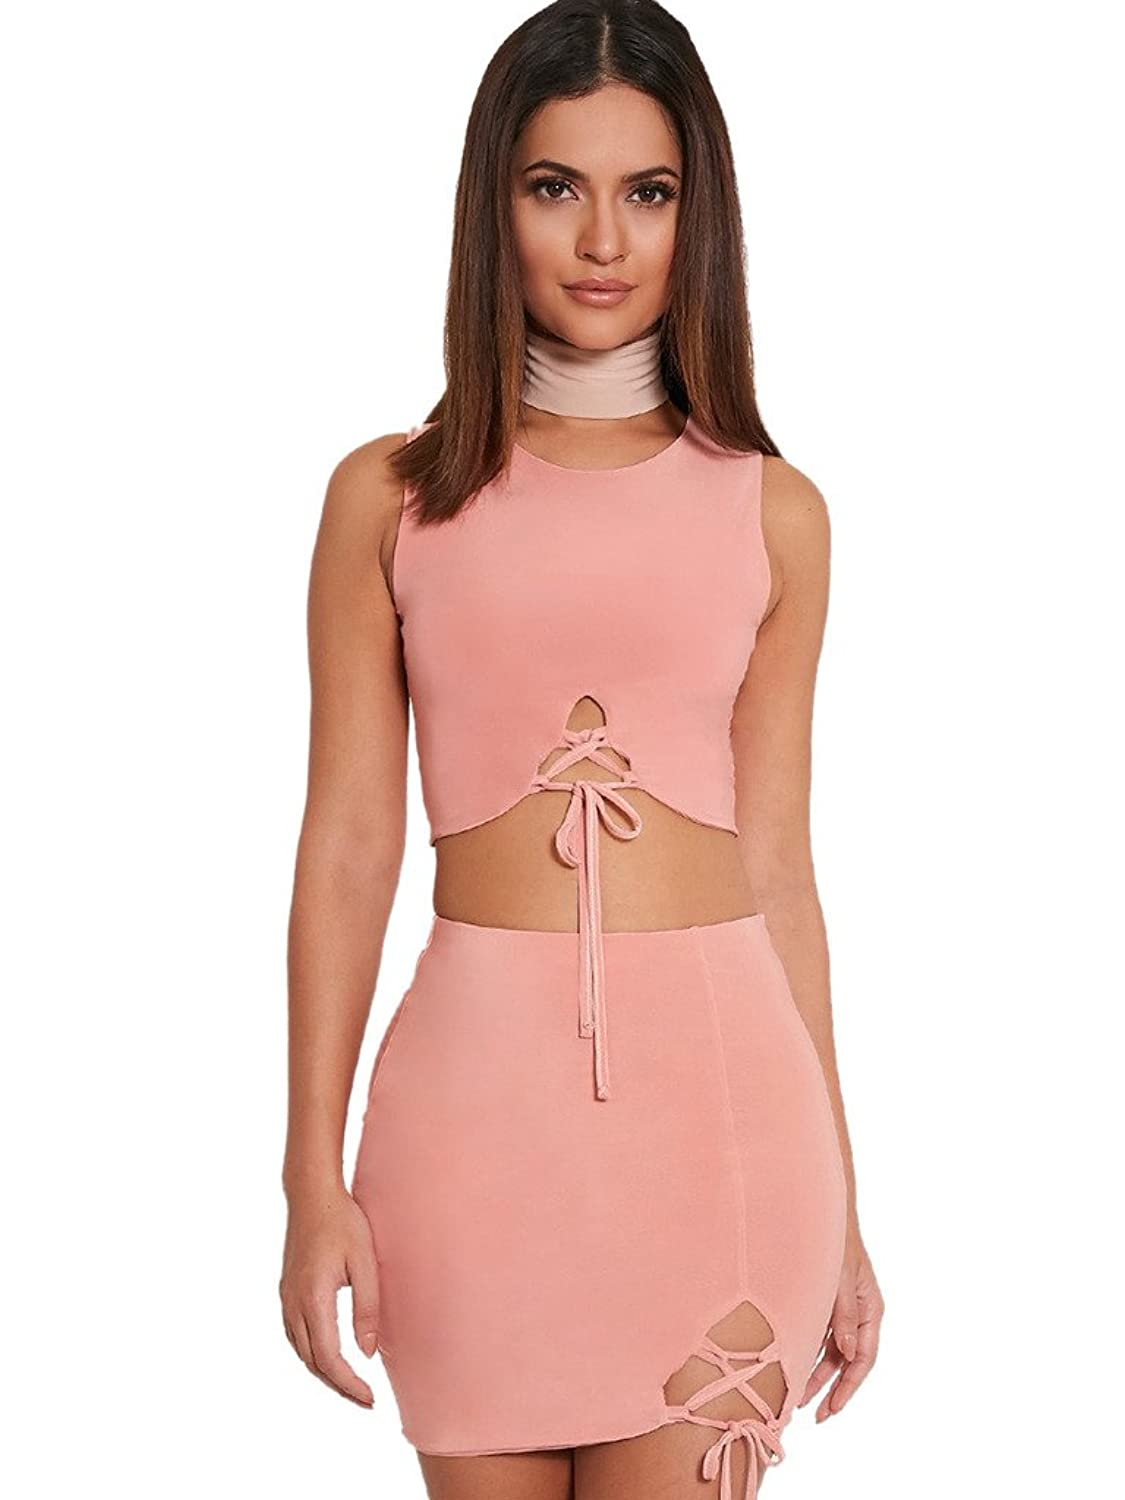 Famulily Women's Two Piece Dress Crop Top and Pencil Skirt S